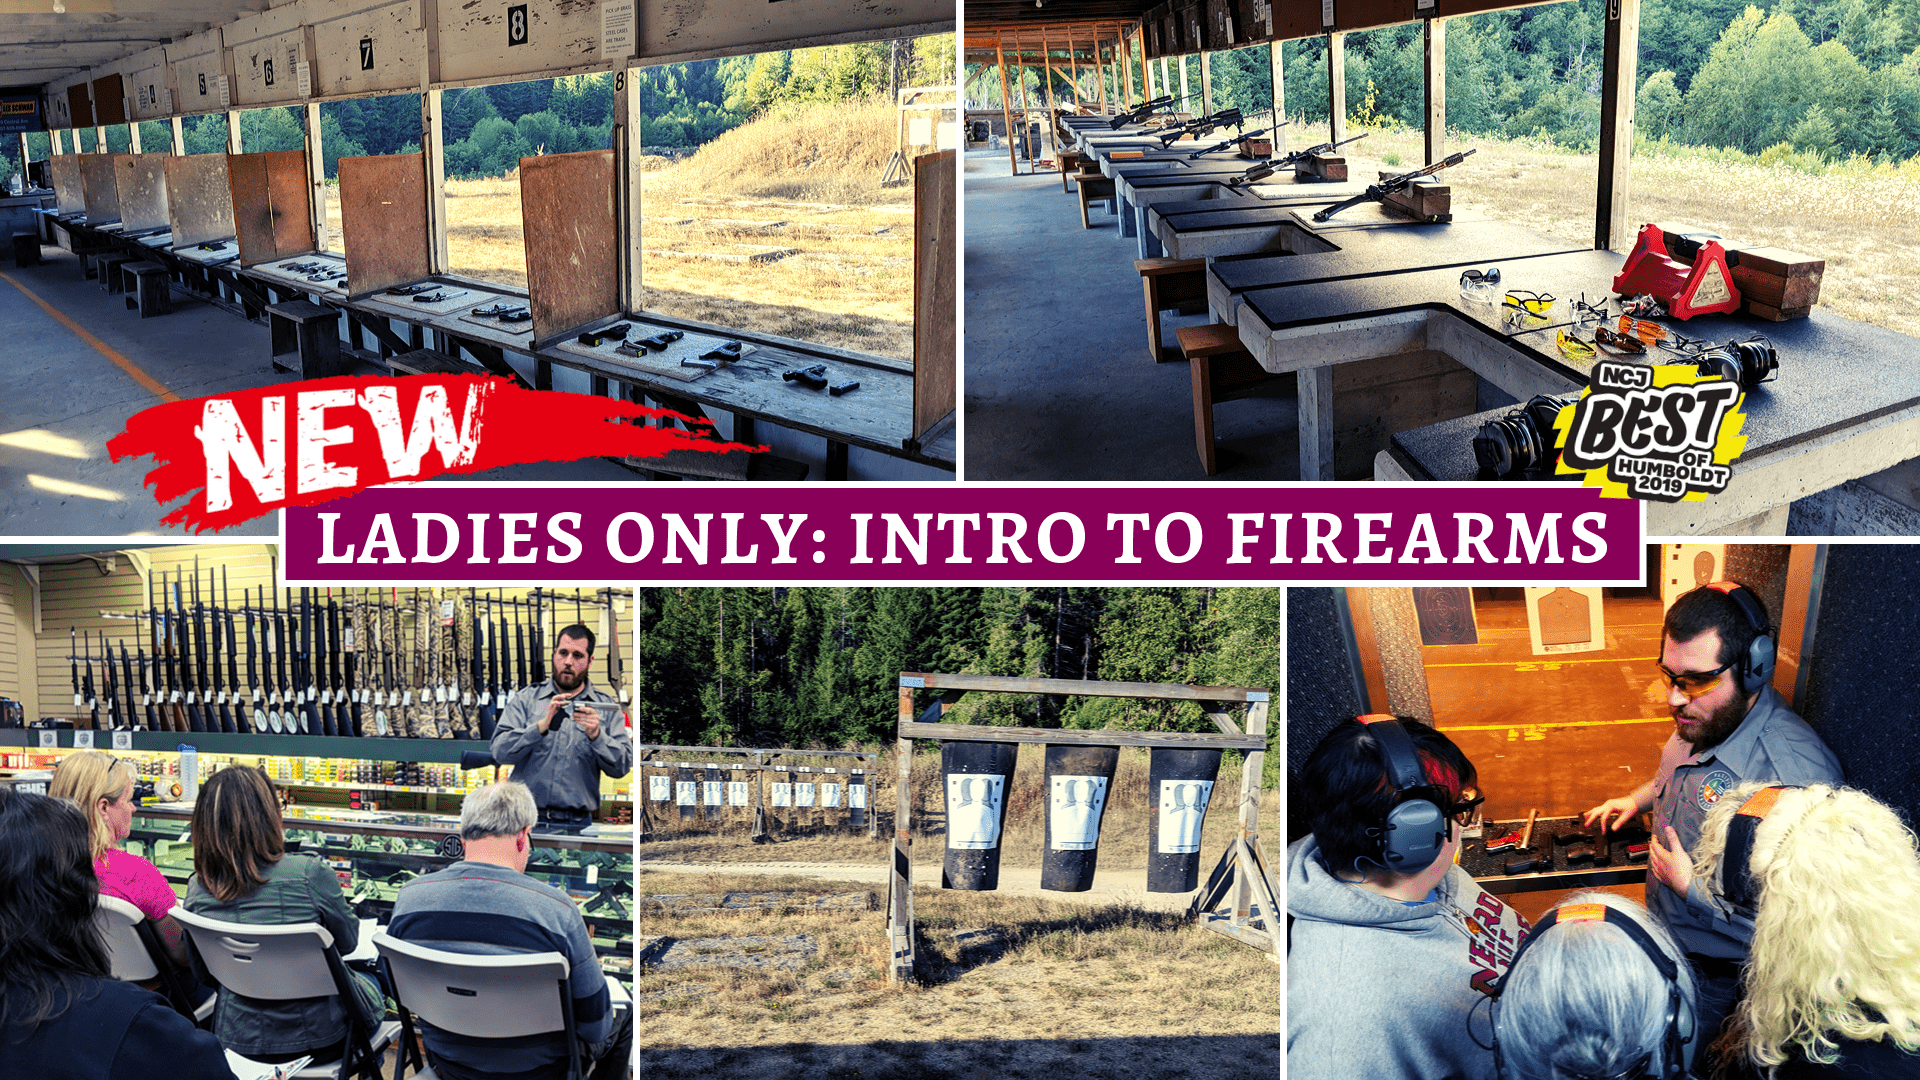 LADIES ONLY INTRO TO FIREARMS - PACIFIC OUTFITTERS